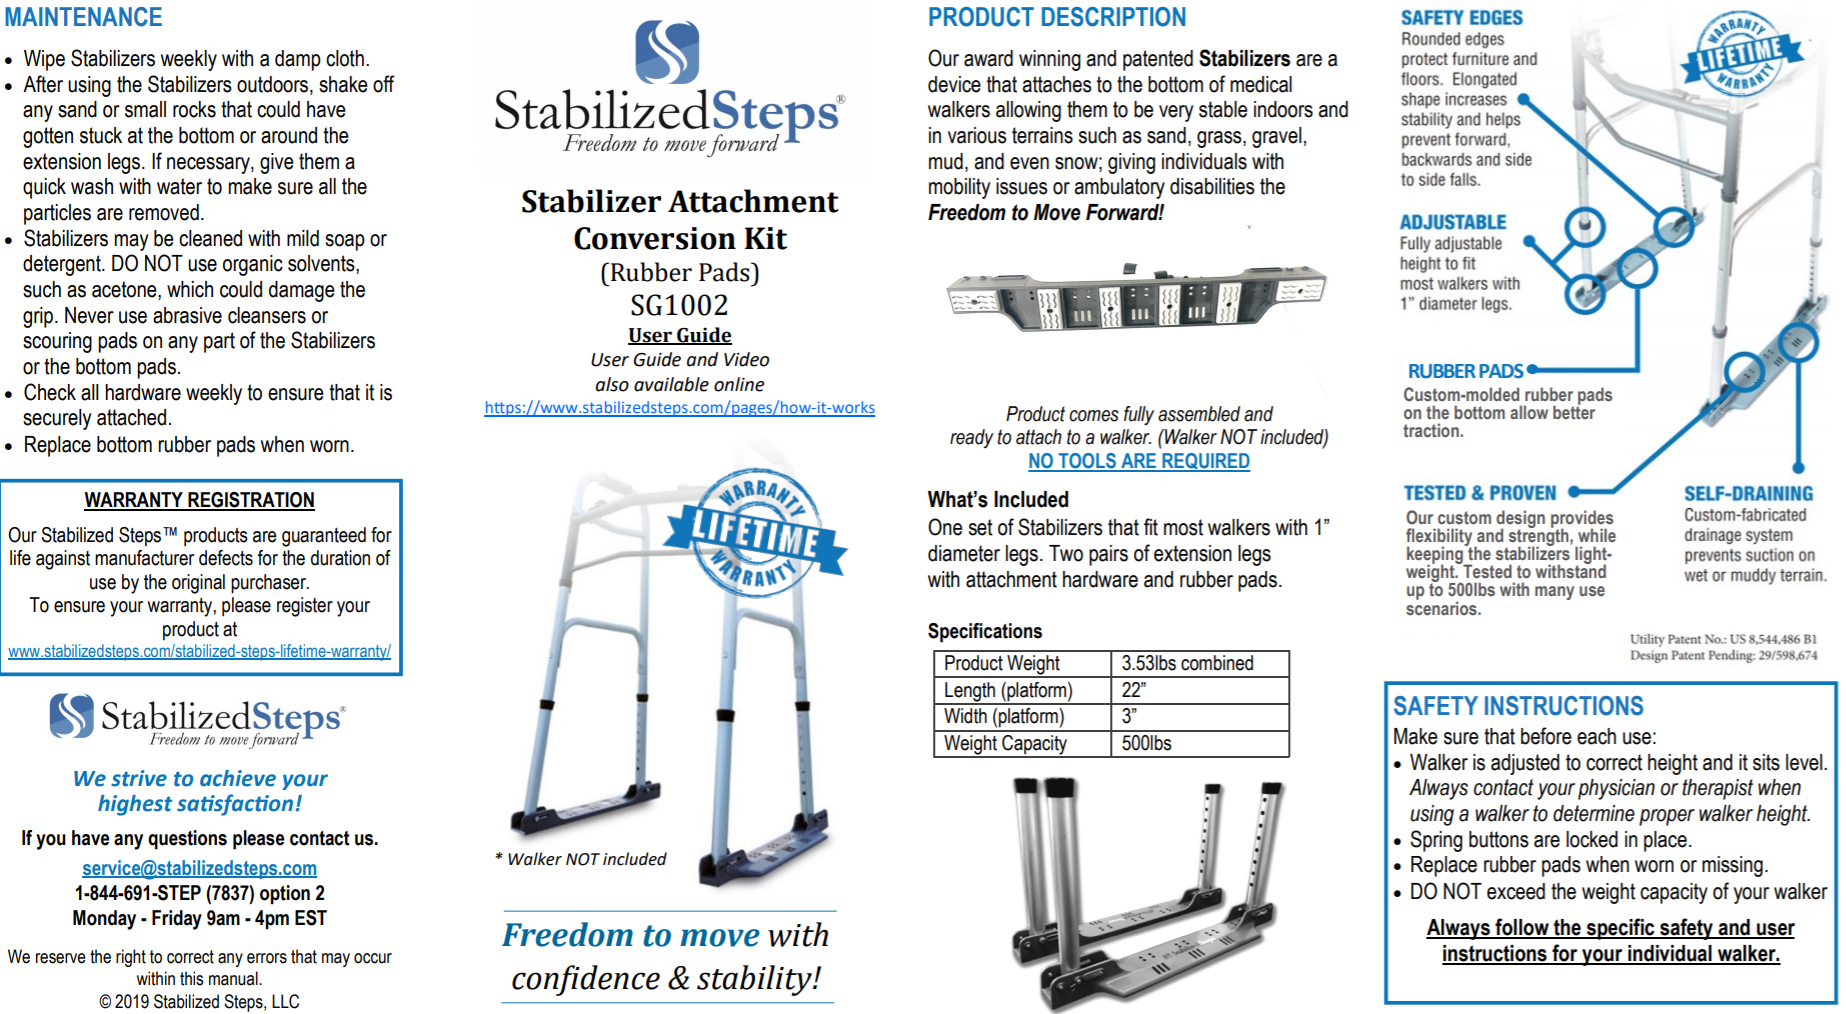 Stabilized Steps - Stabilizer Attachment SG1002 User Guide. Best tool for stability and fall prevention